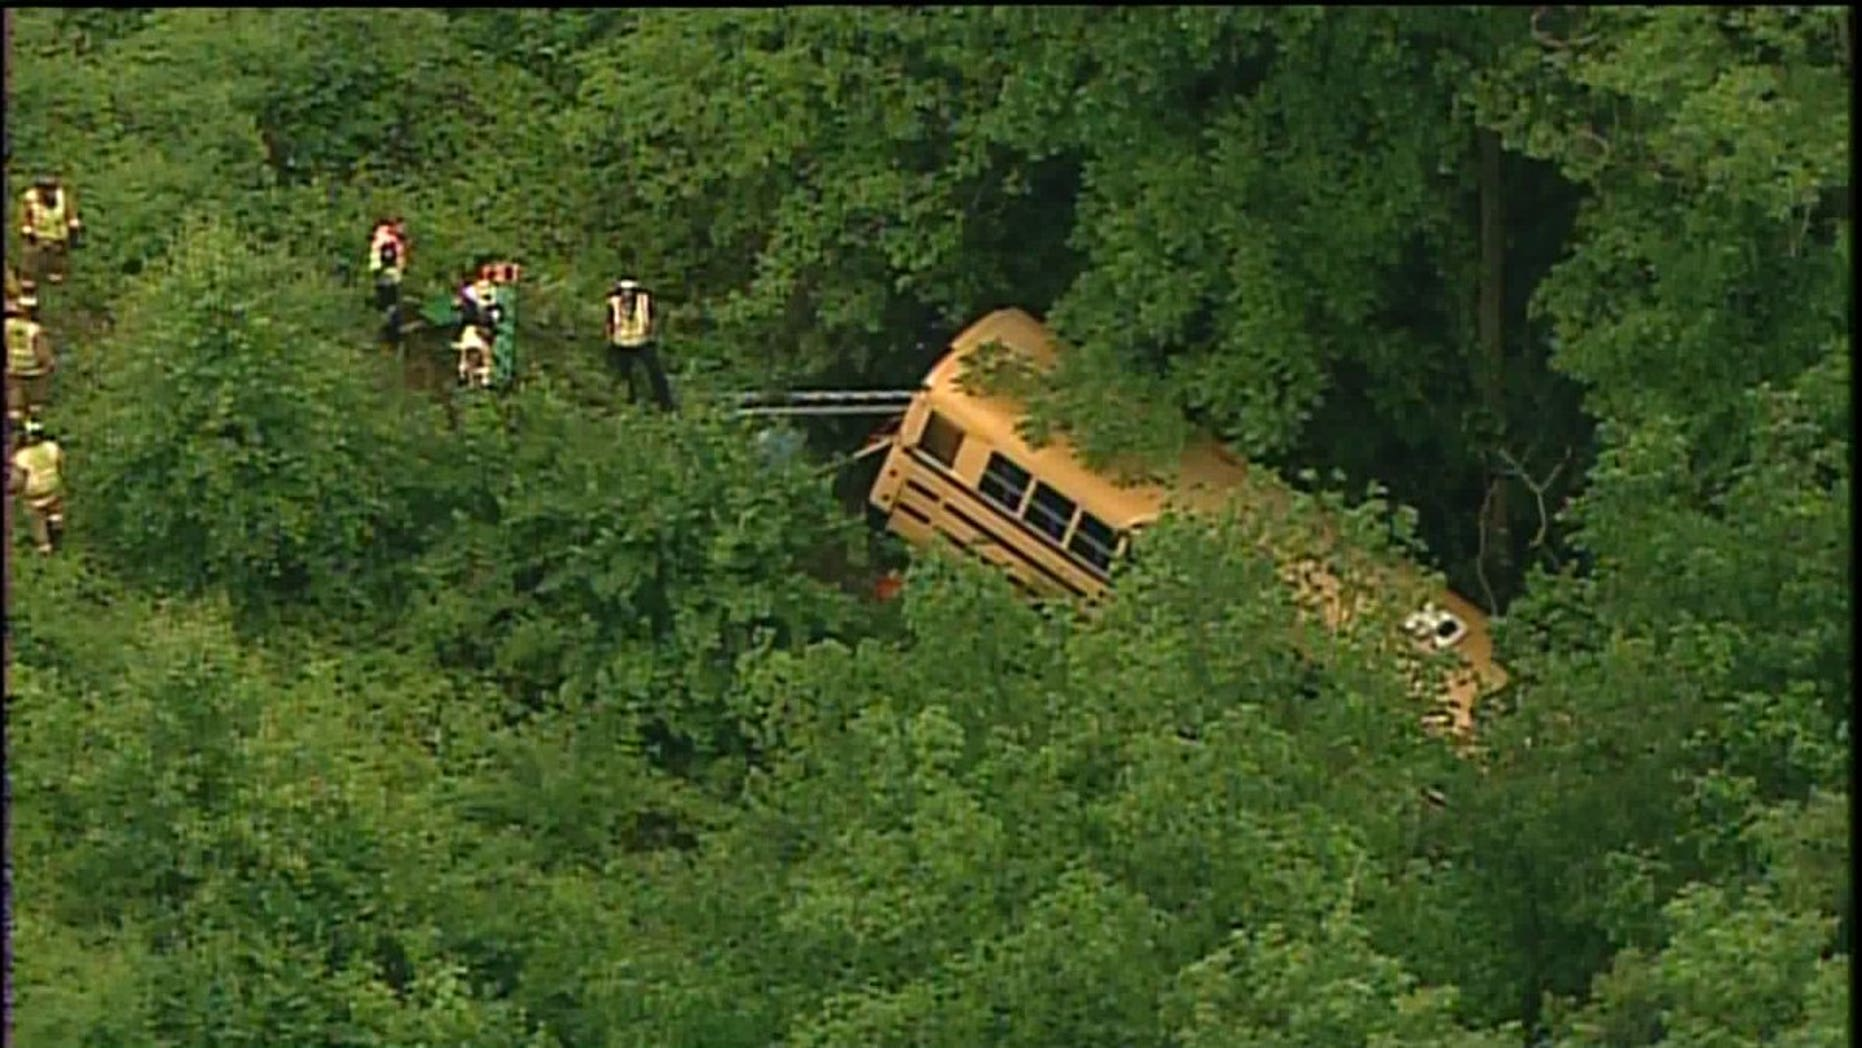 The bus plunged into a ravine in St. Louis County.